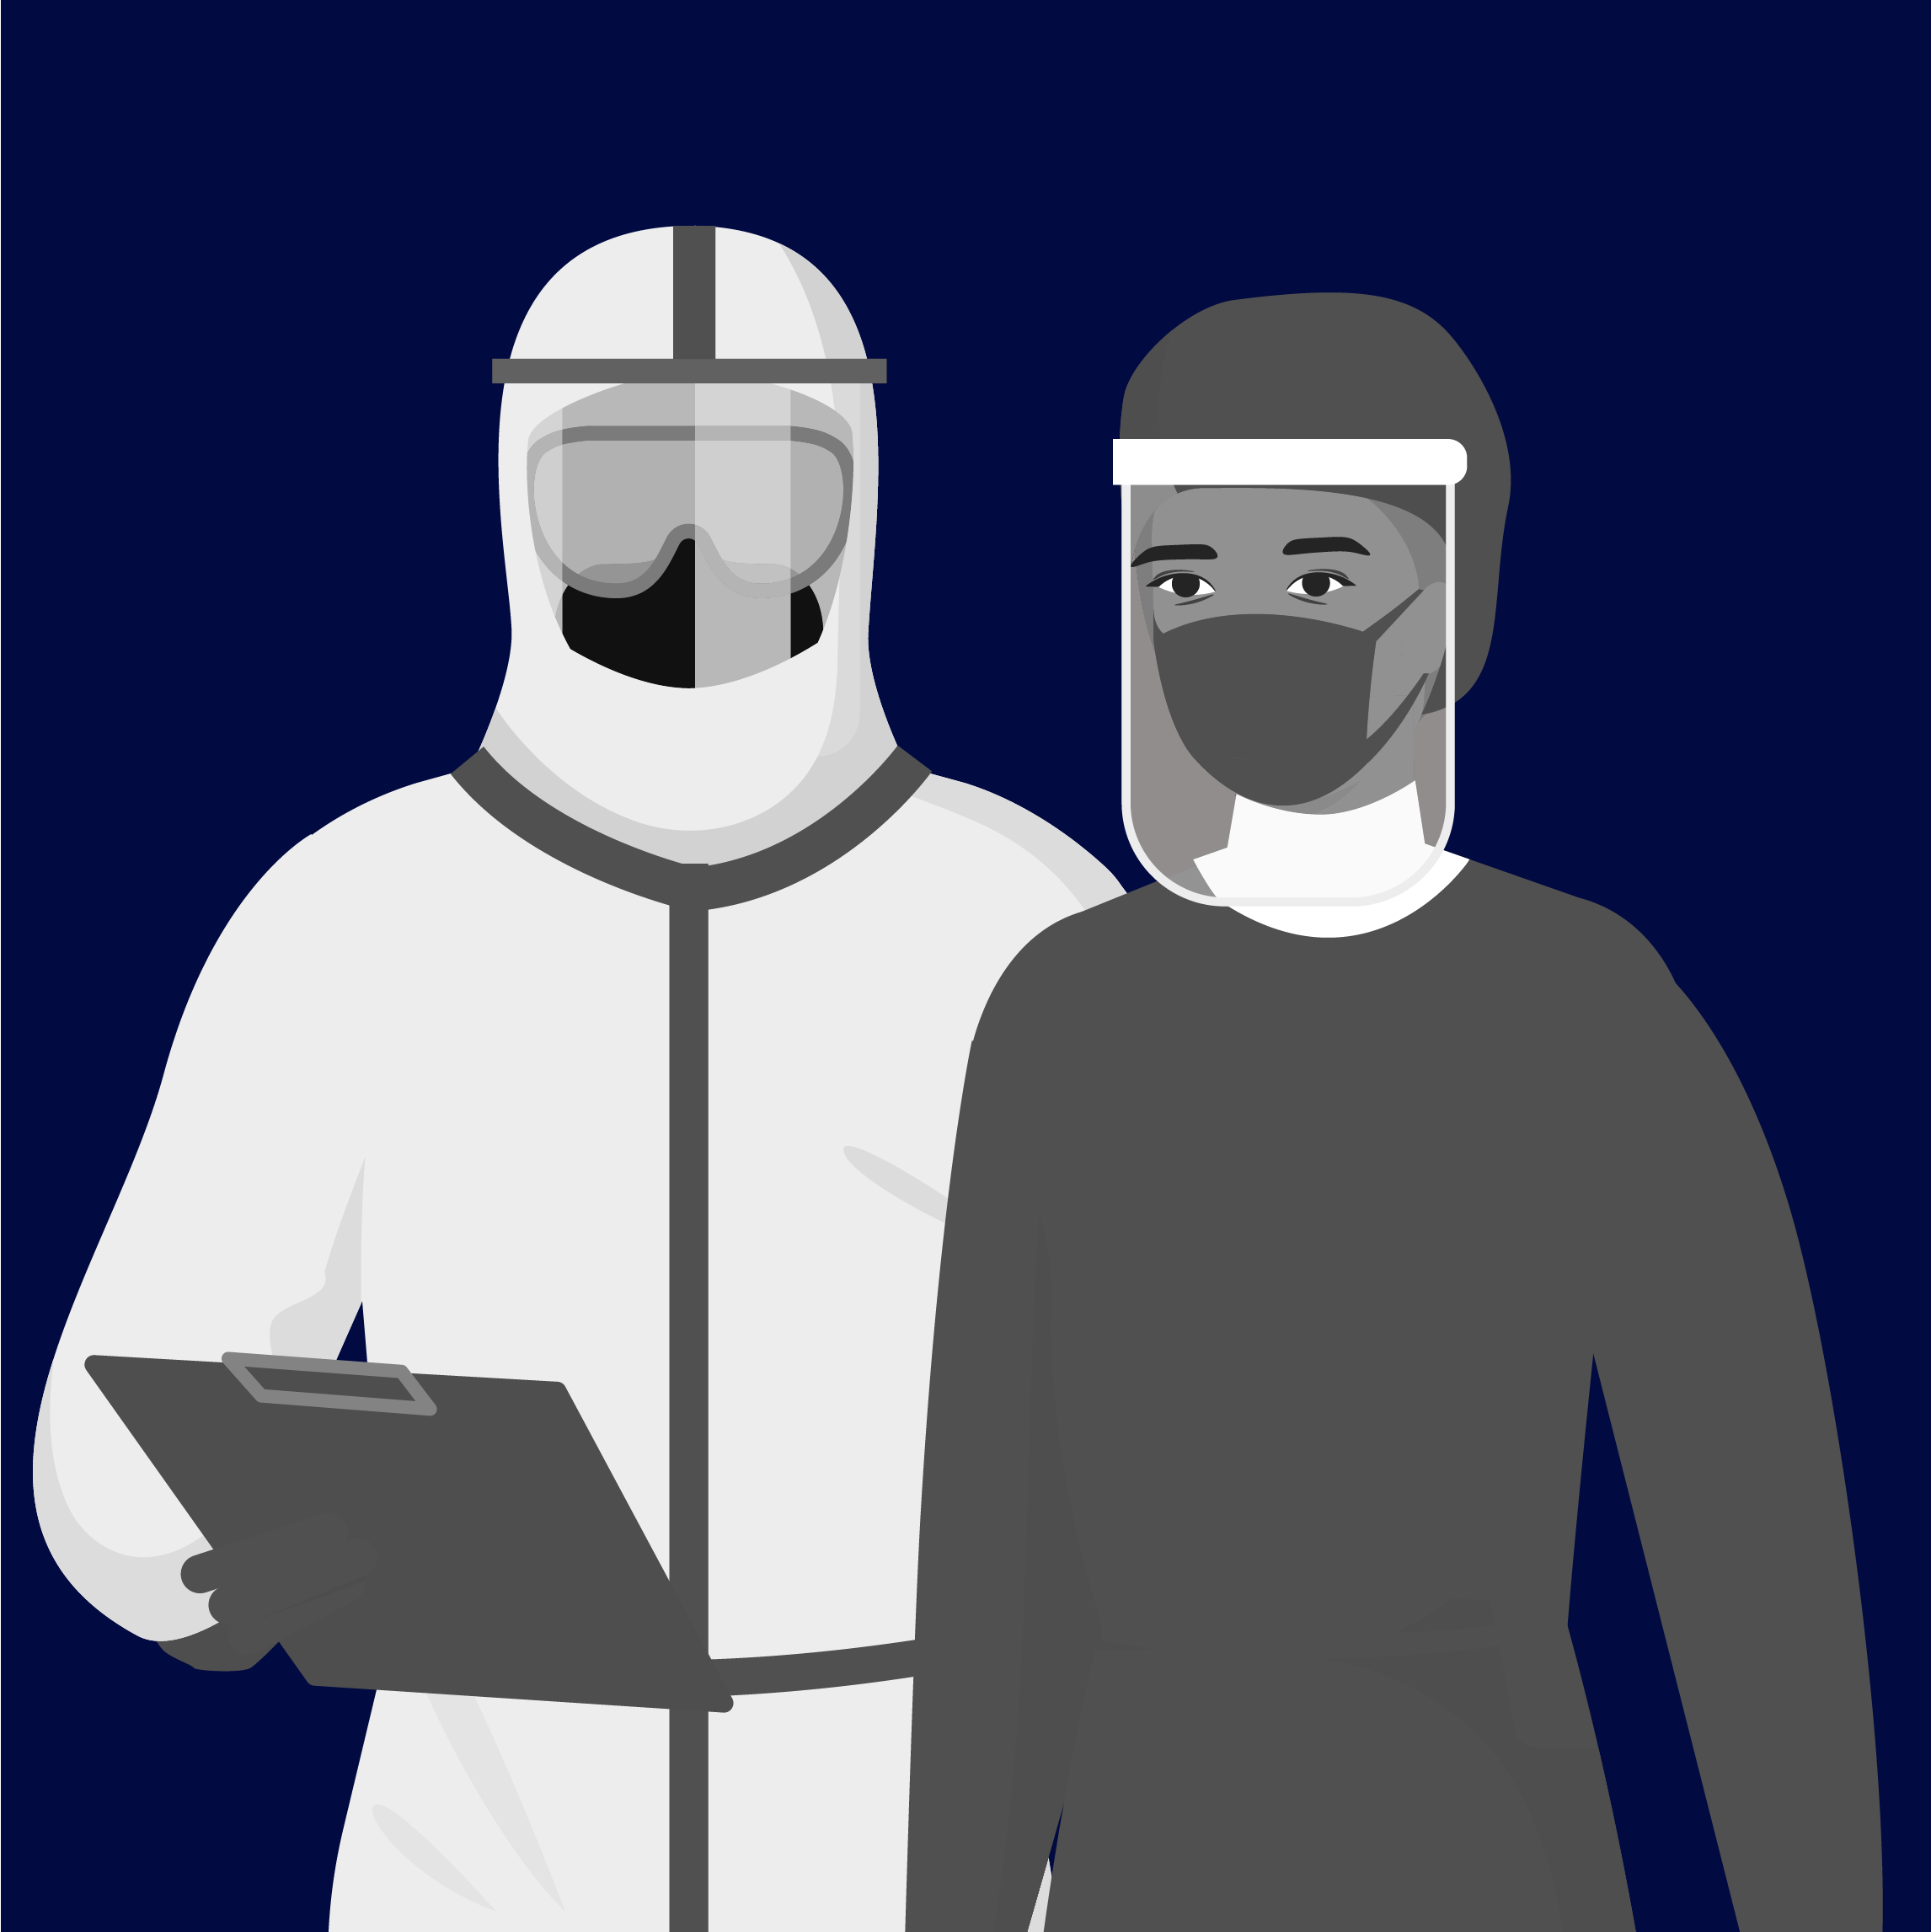 An illustration of two care workers in full PPE